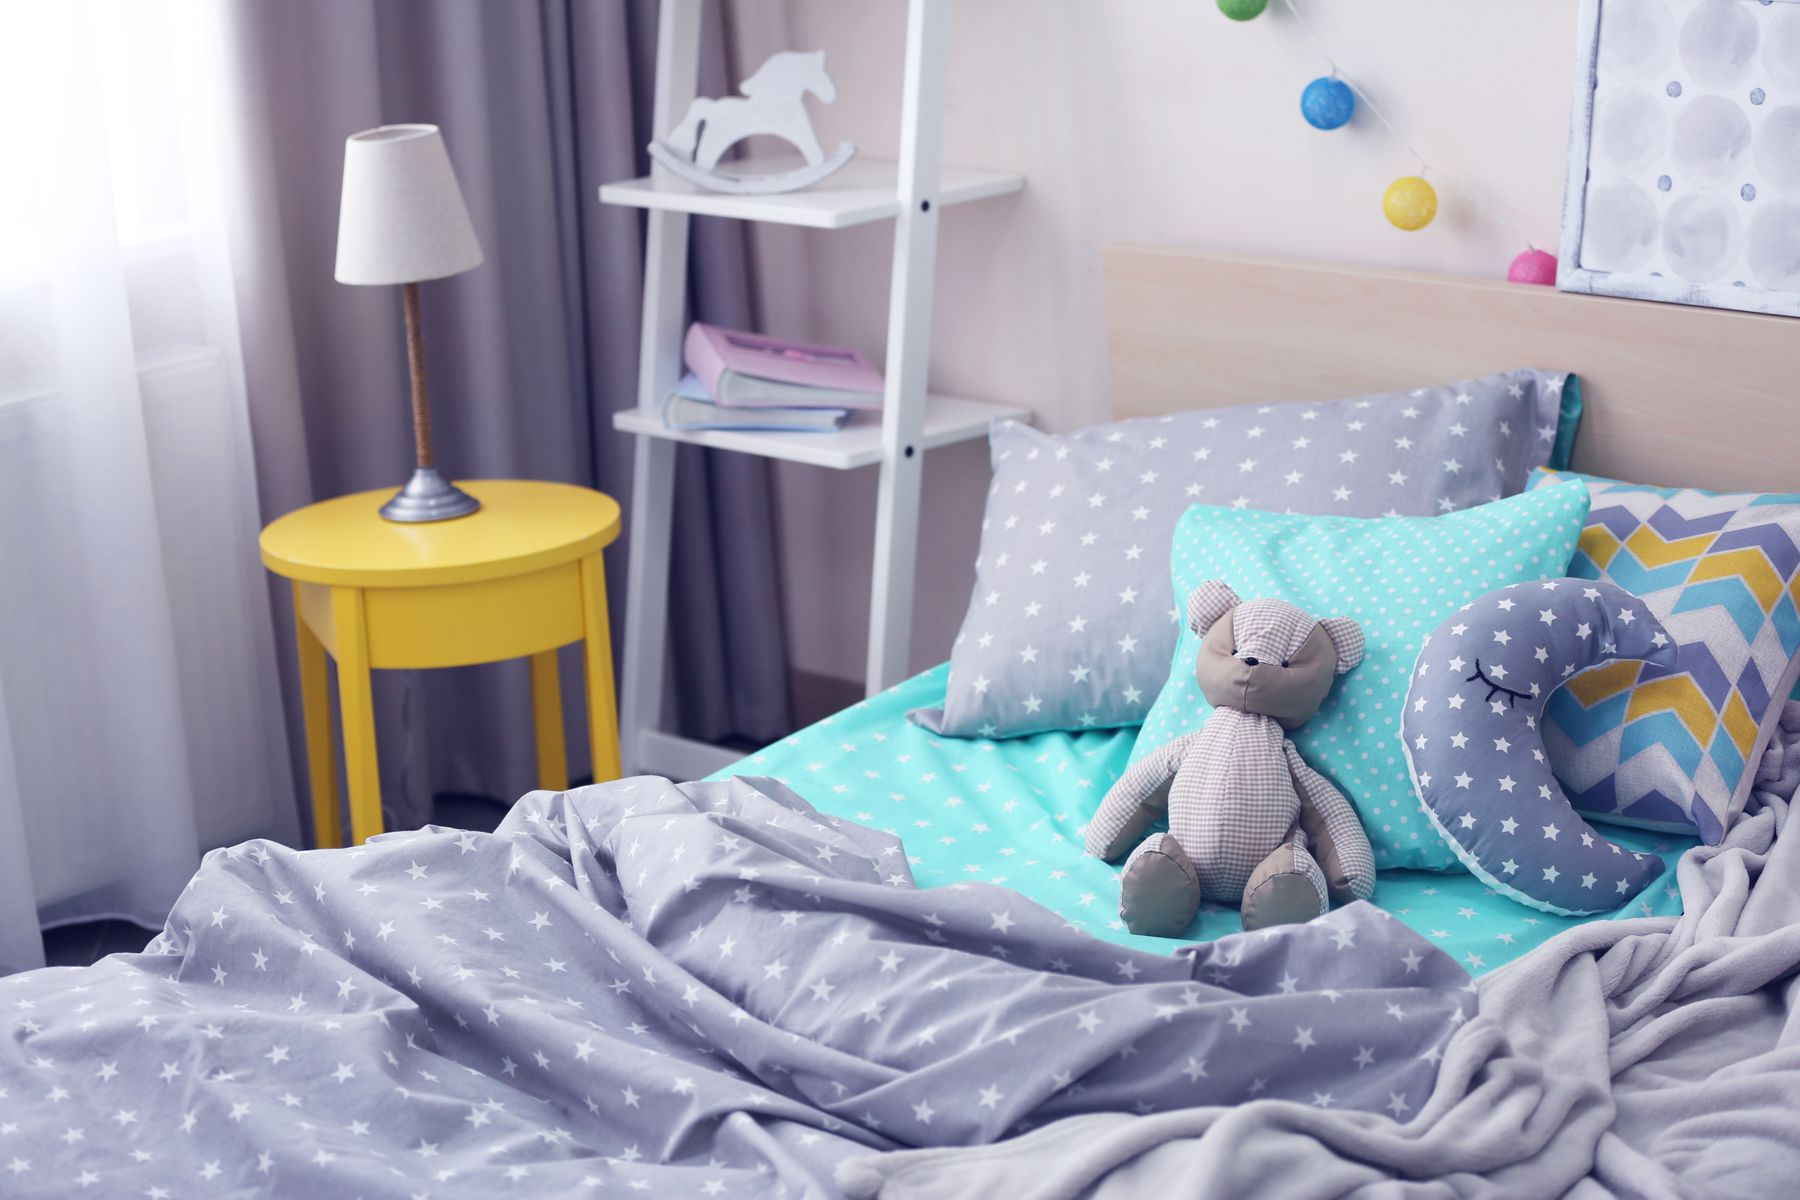 How to Clean Snacks Stains from Your Child's Bed Sheet shutterstock 423342997